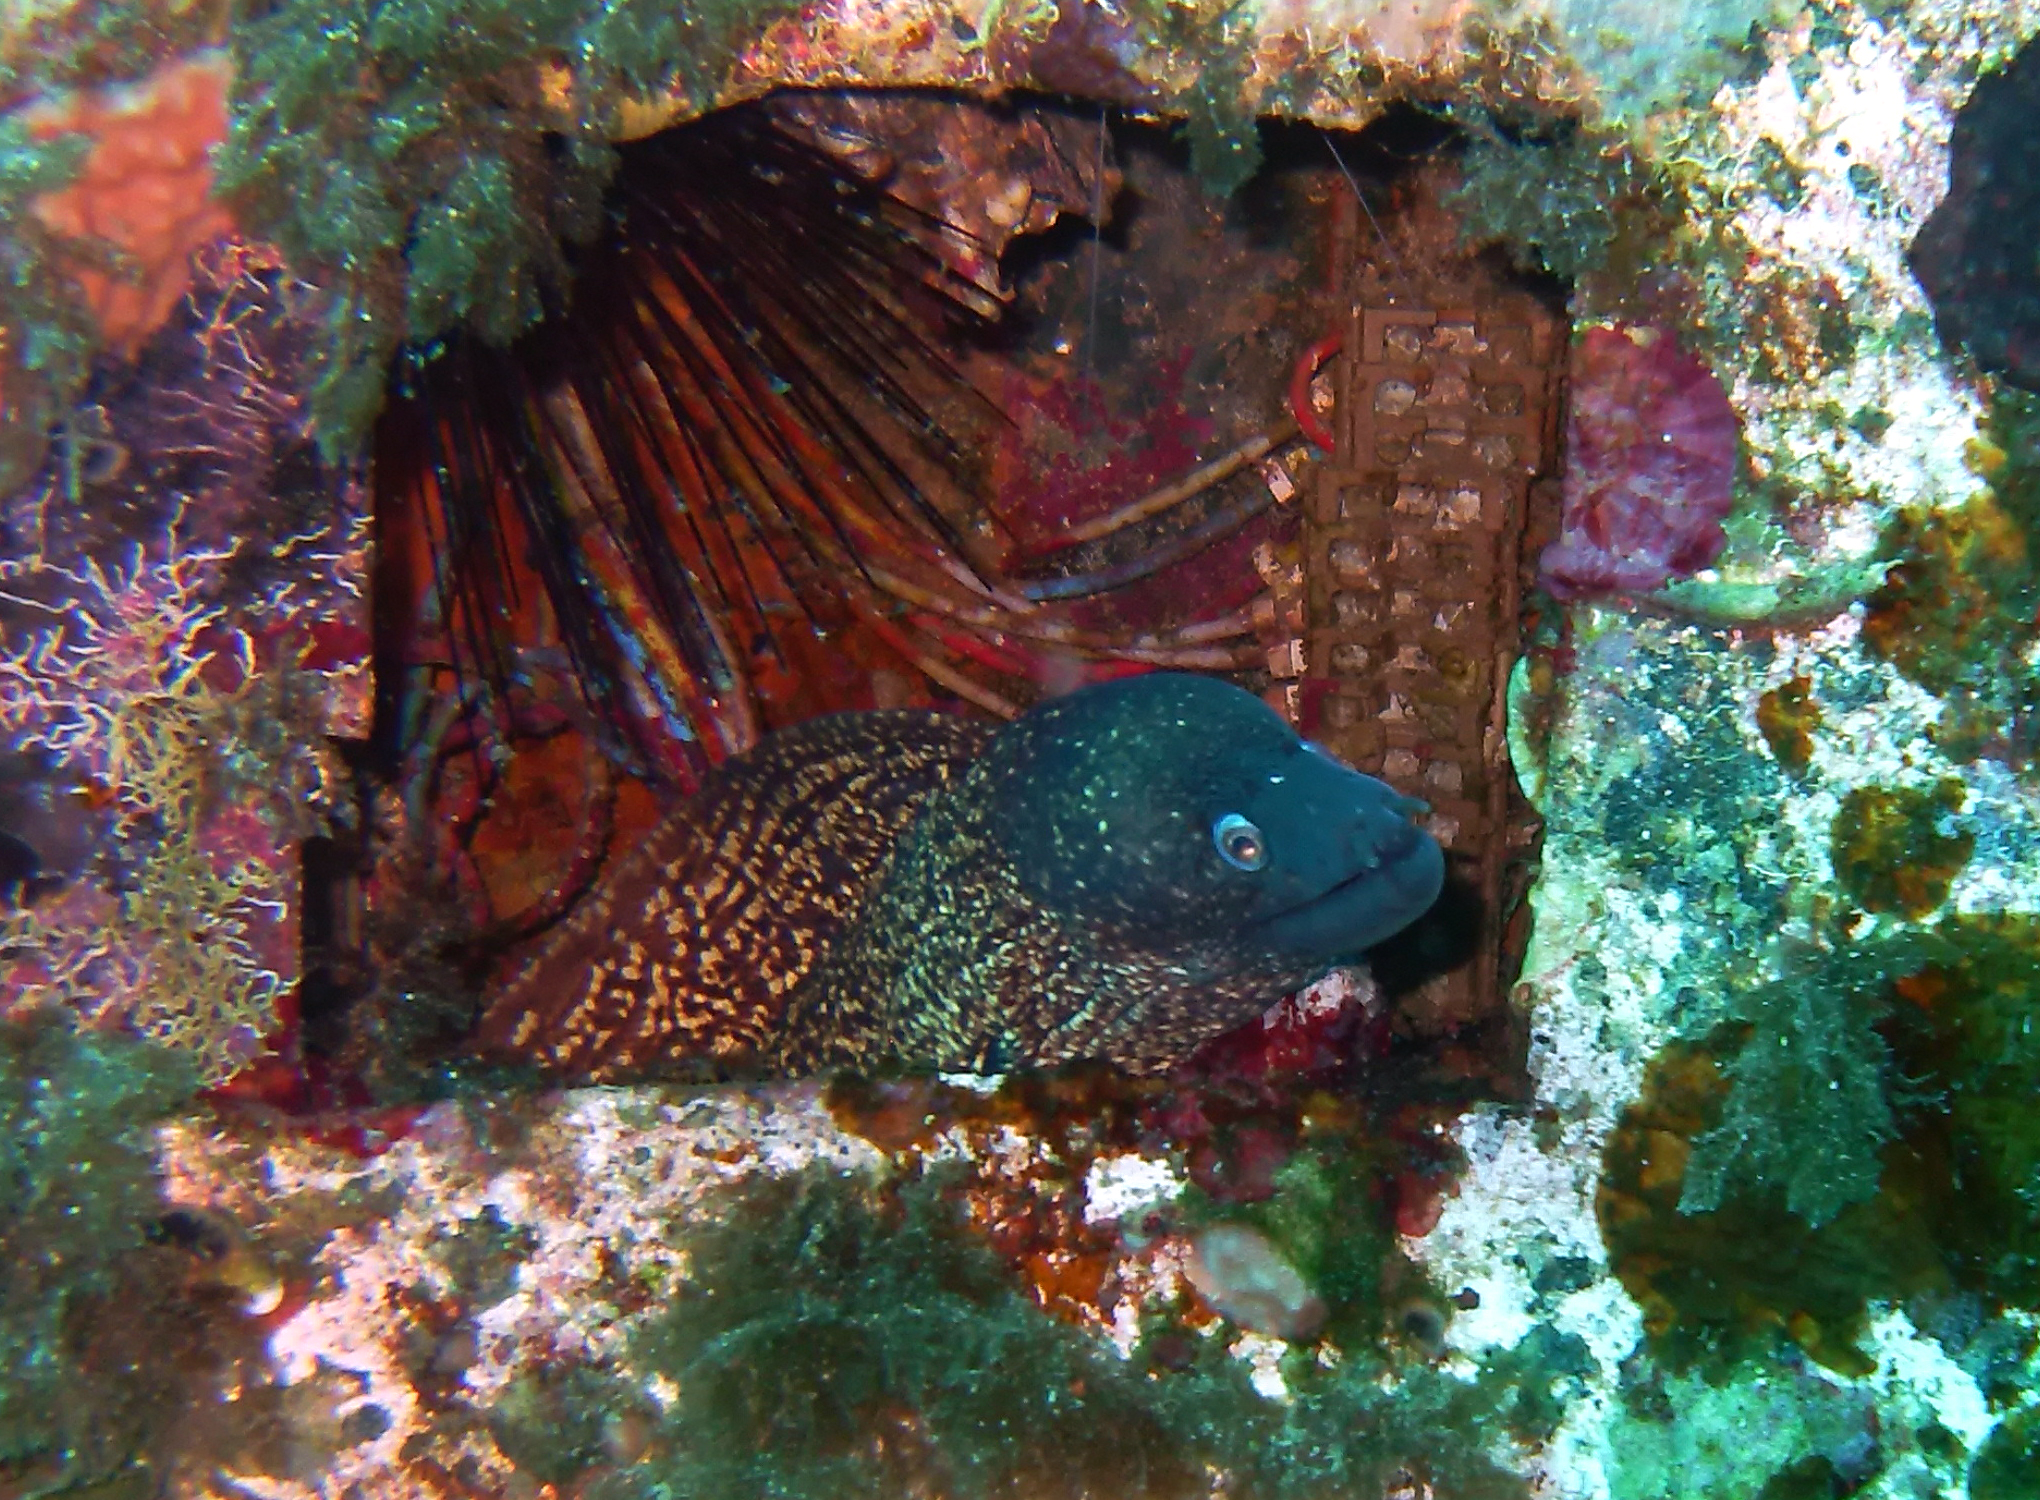 Animal. moray eel in Malta. Amy Dunton